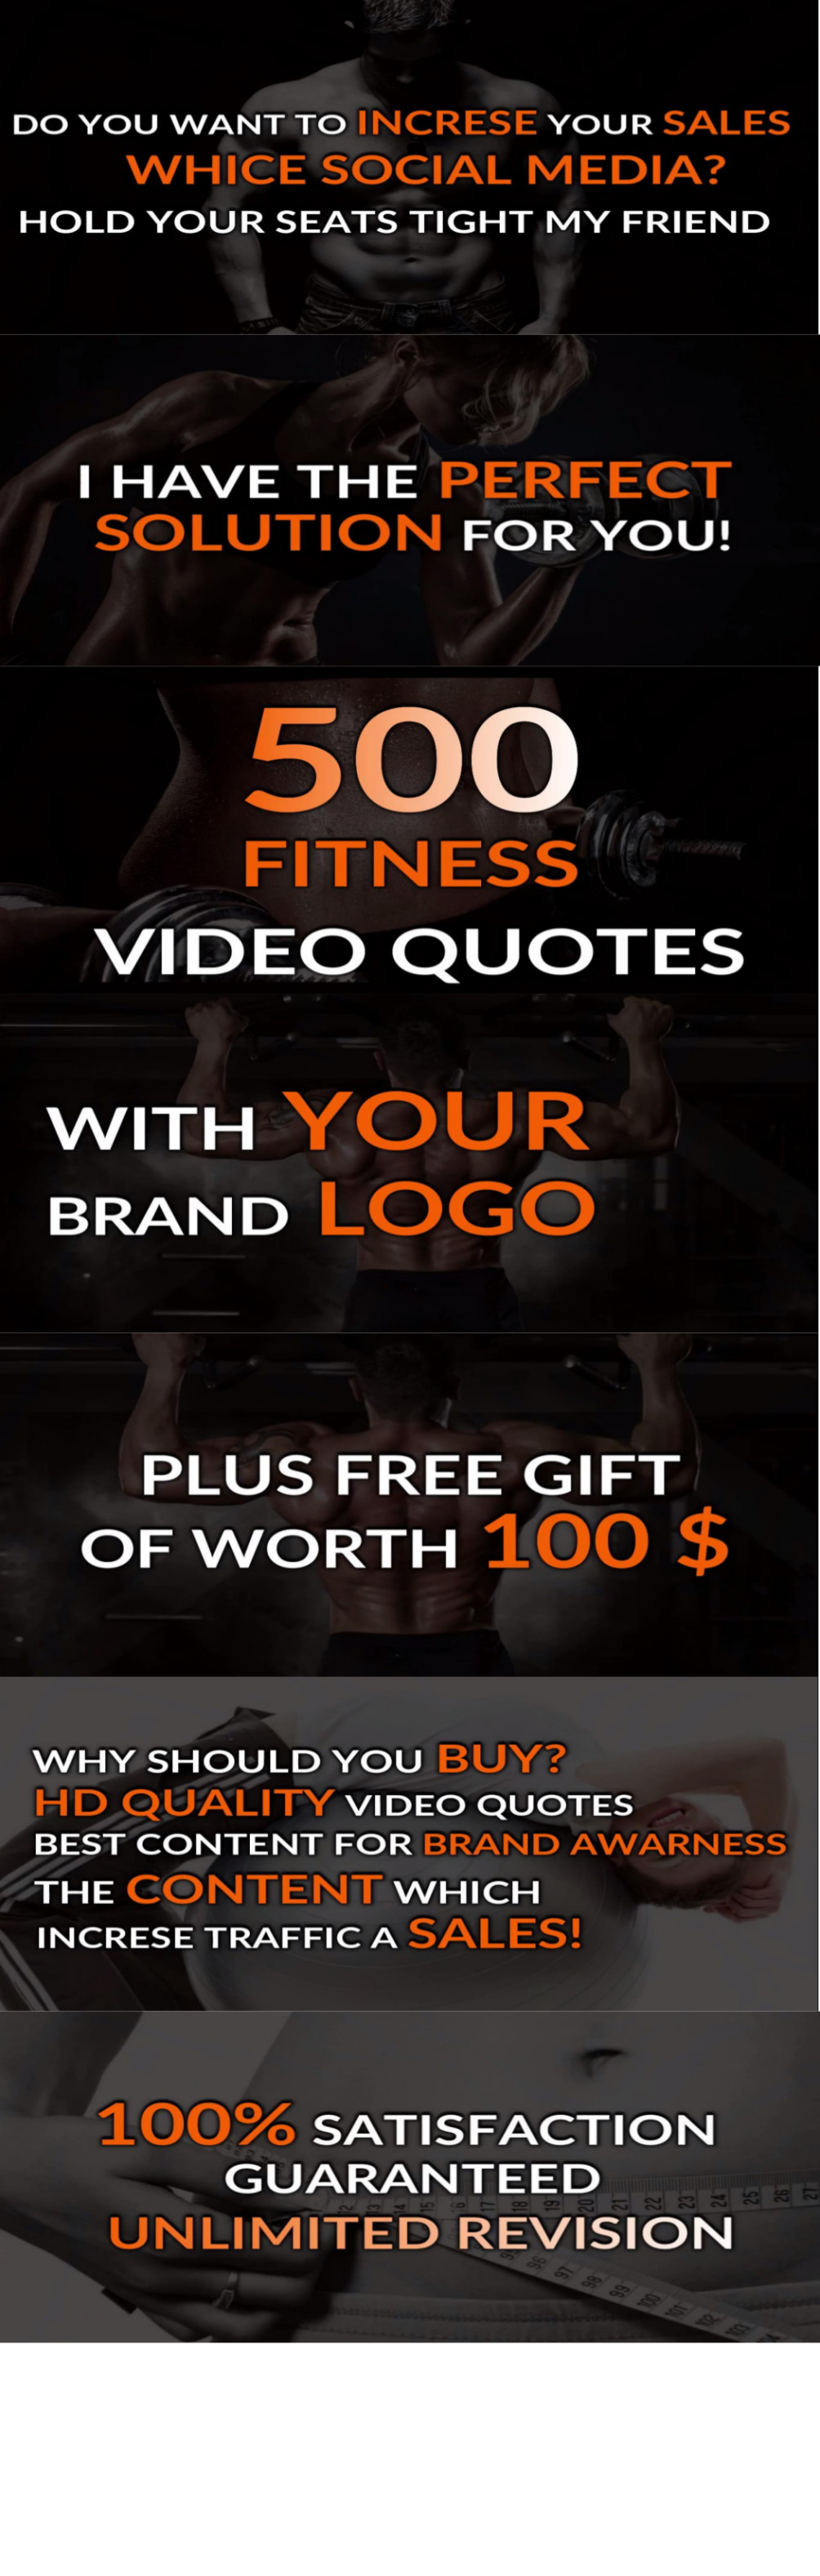 Create 500 Fitness Motivational Video Quotes With Your Brand Logo By Contentrobust